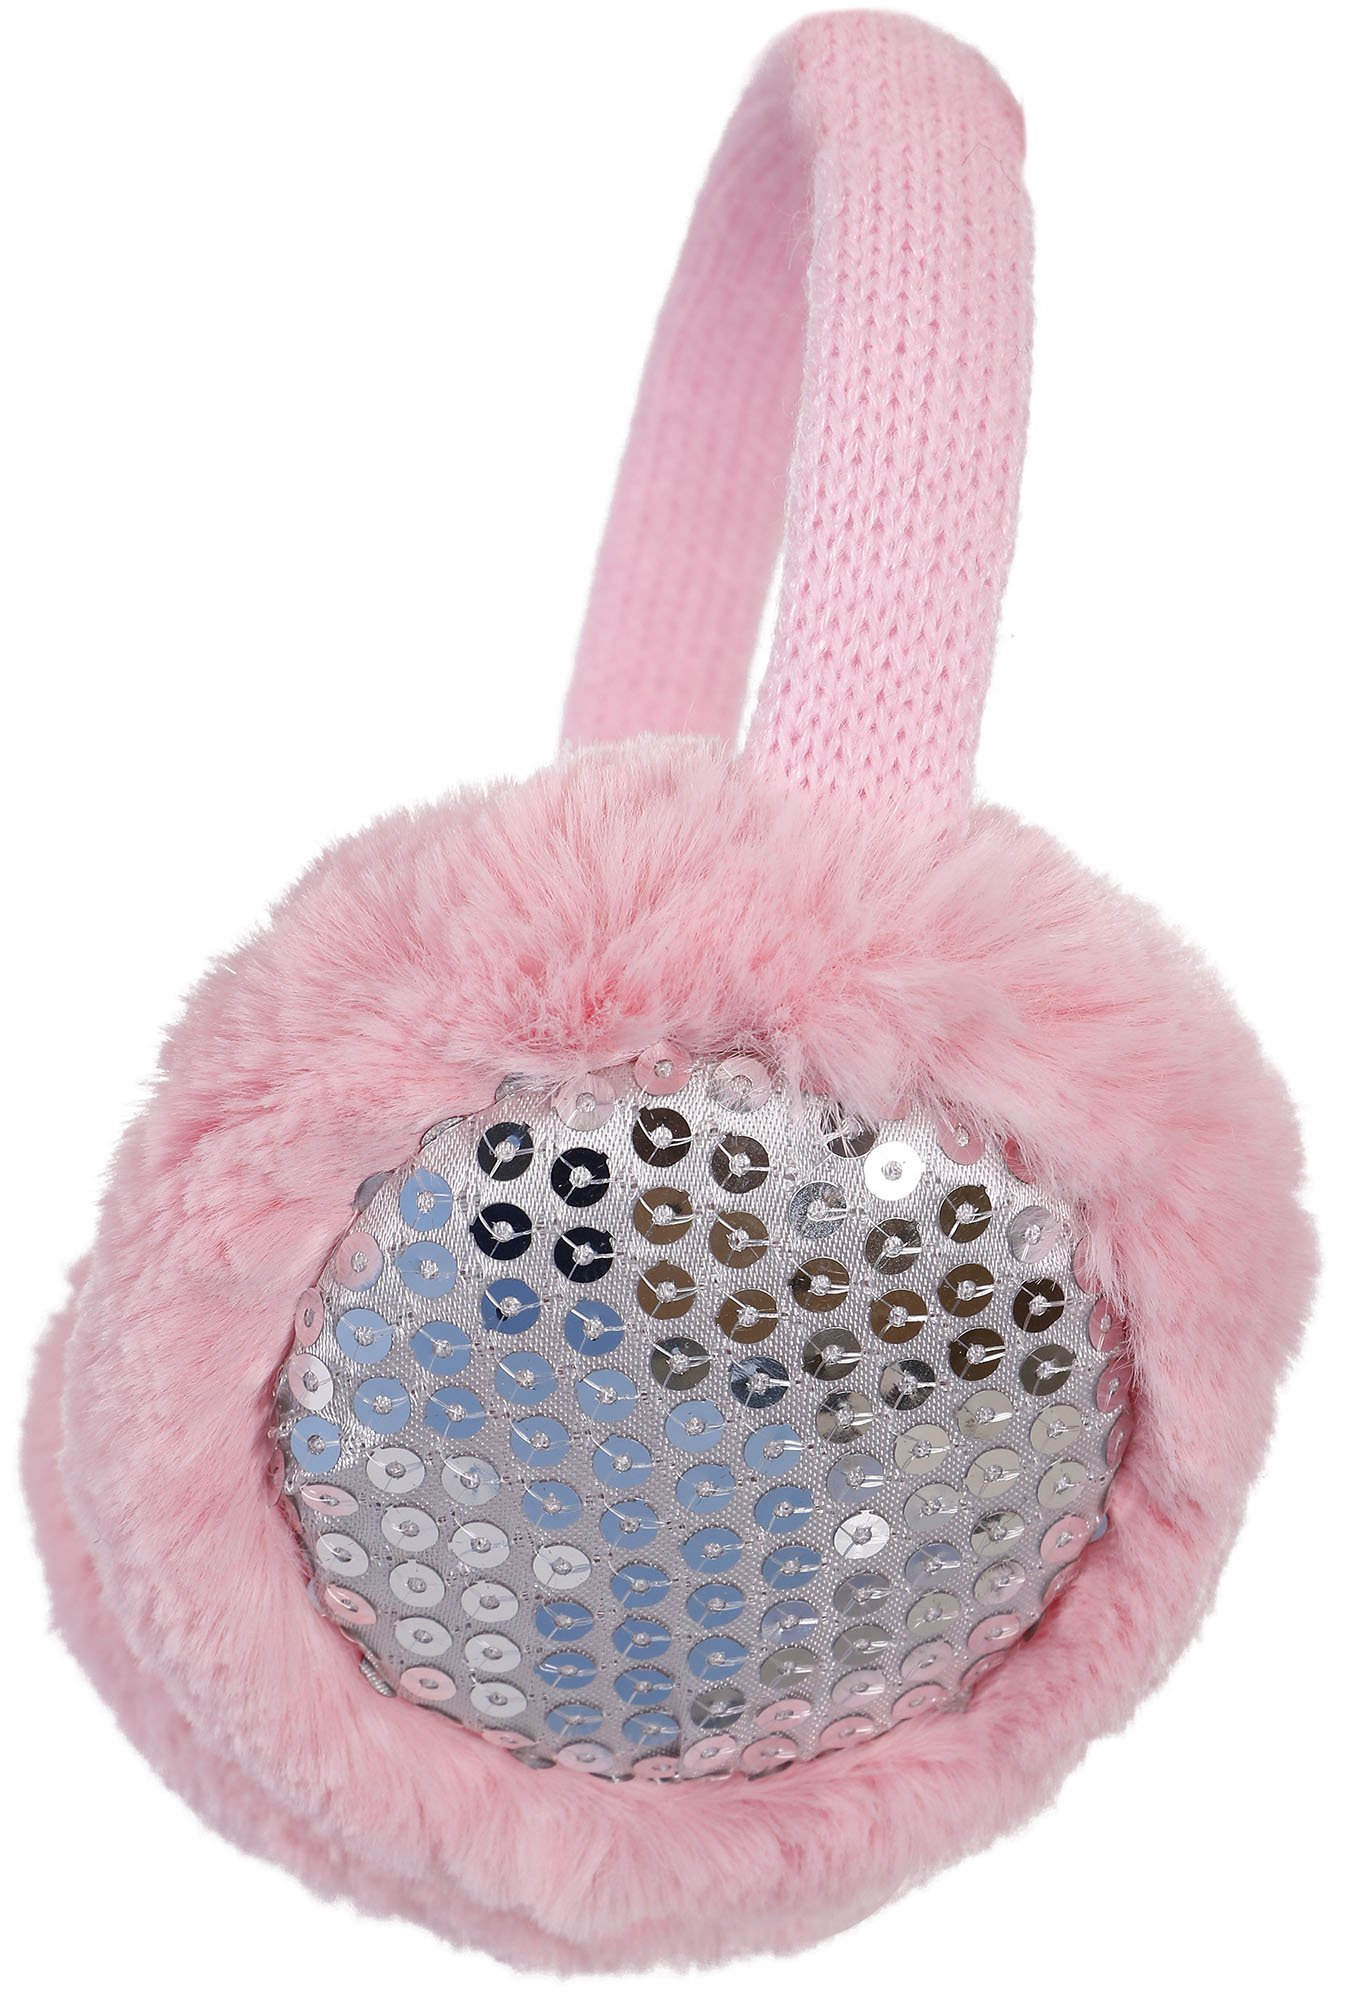 Simplicity Faux Fur Fluffy Knit Patterned / Sequin Winter Earmuffs, Pink